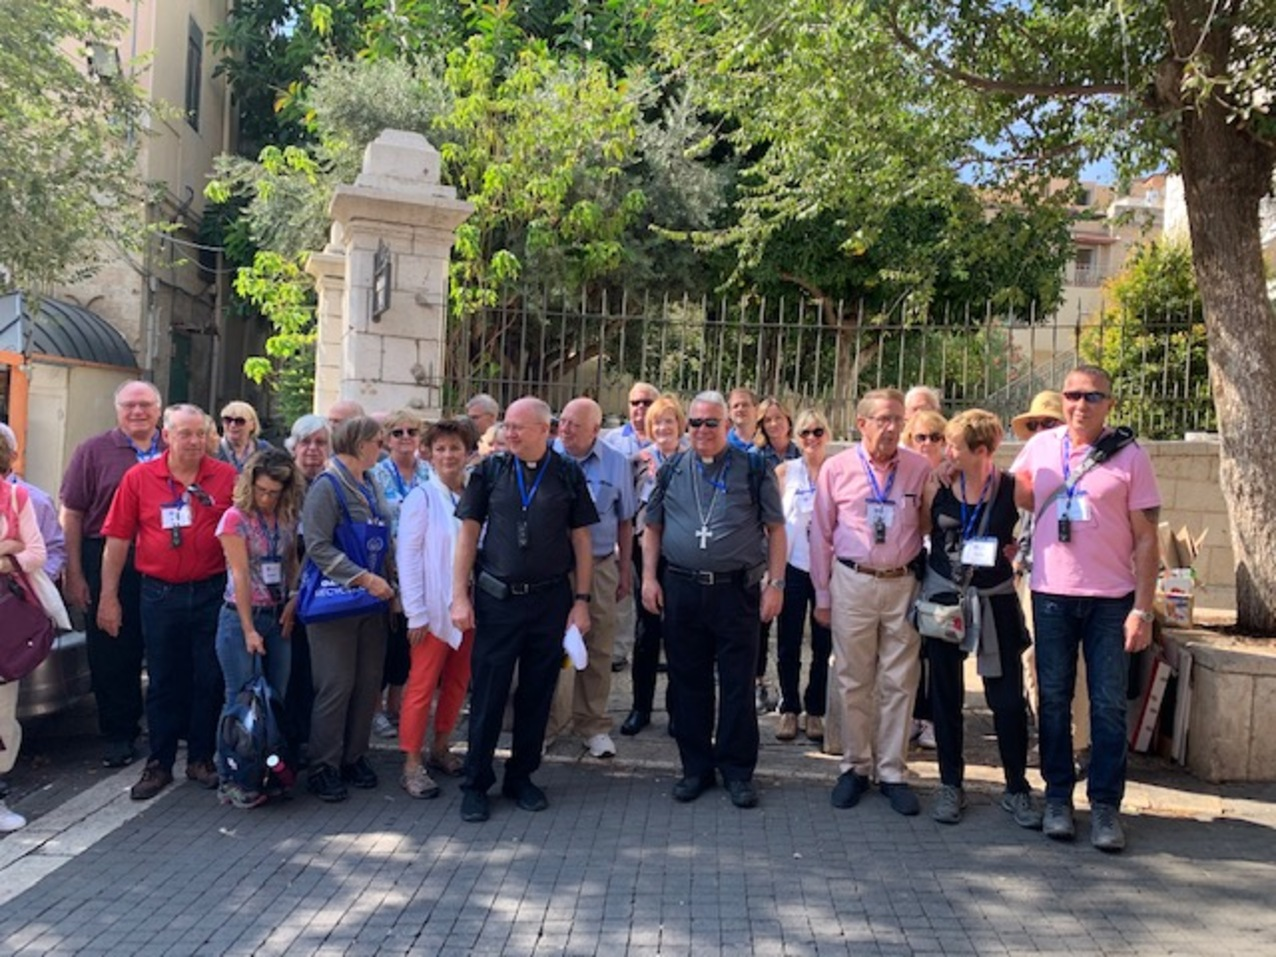 Pilgrimage to the Holy Land – Day 4: Where Jesus preached and pondering our spiritual blessings